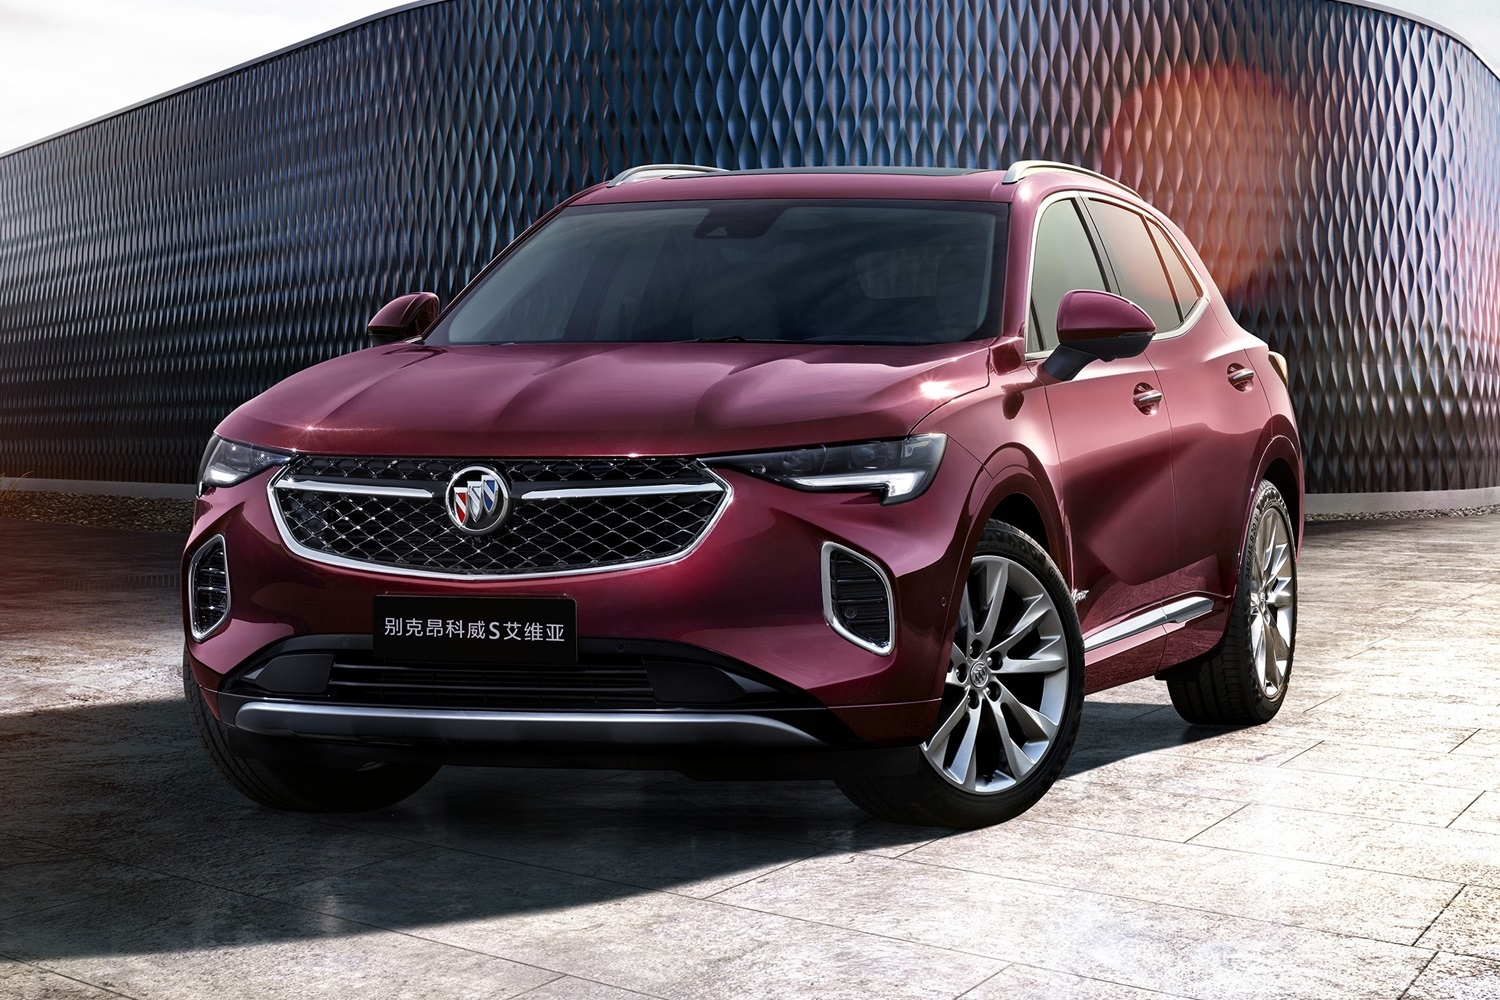 Range-Topping 2021 Buick Envision Avenir Revealed | Gm Authority 2021 Buick Cascada Used, 0-60, Colors